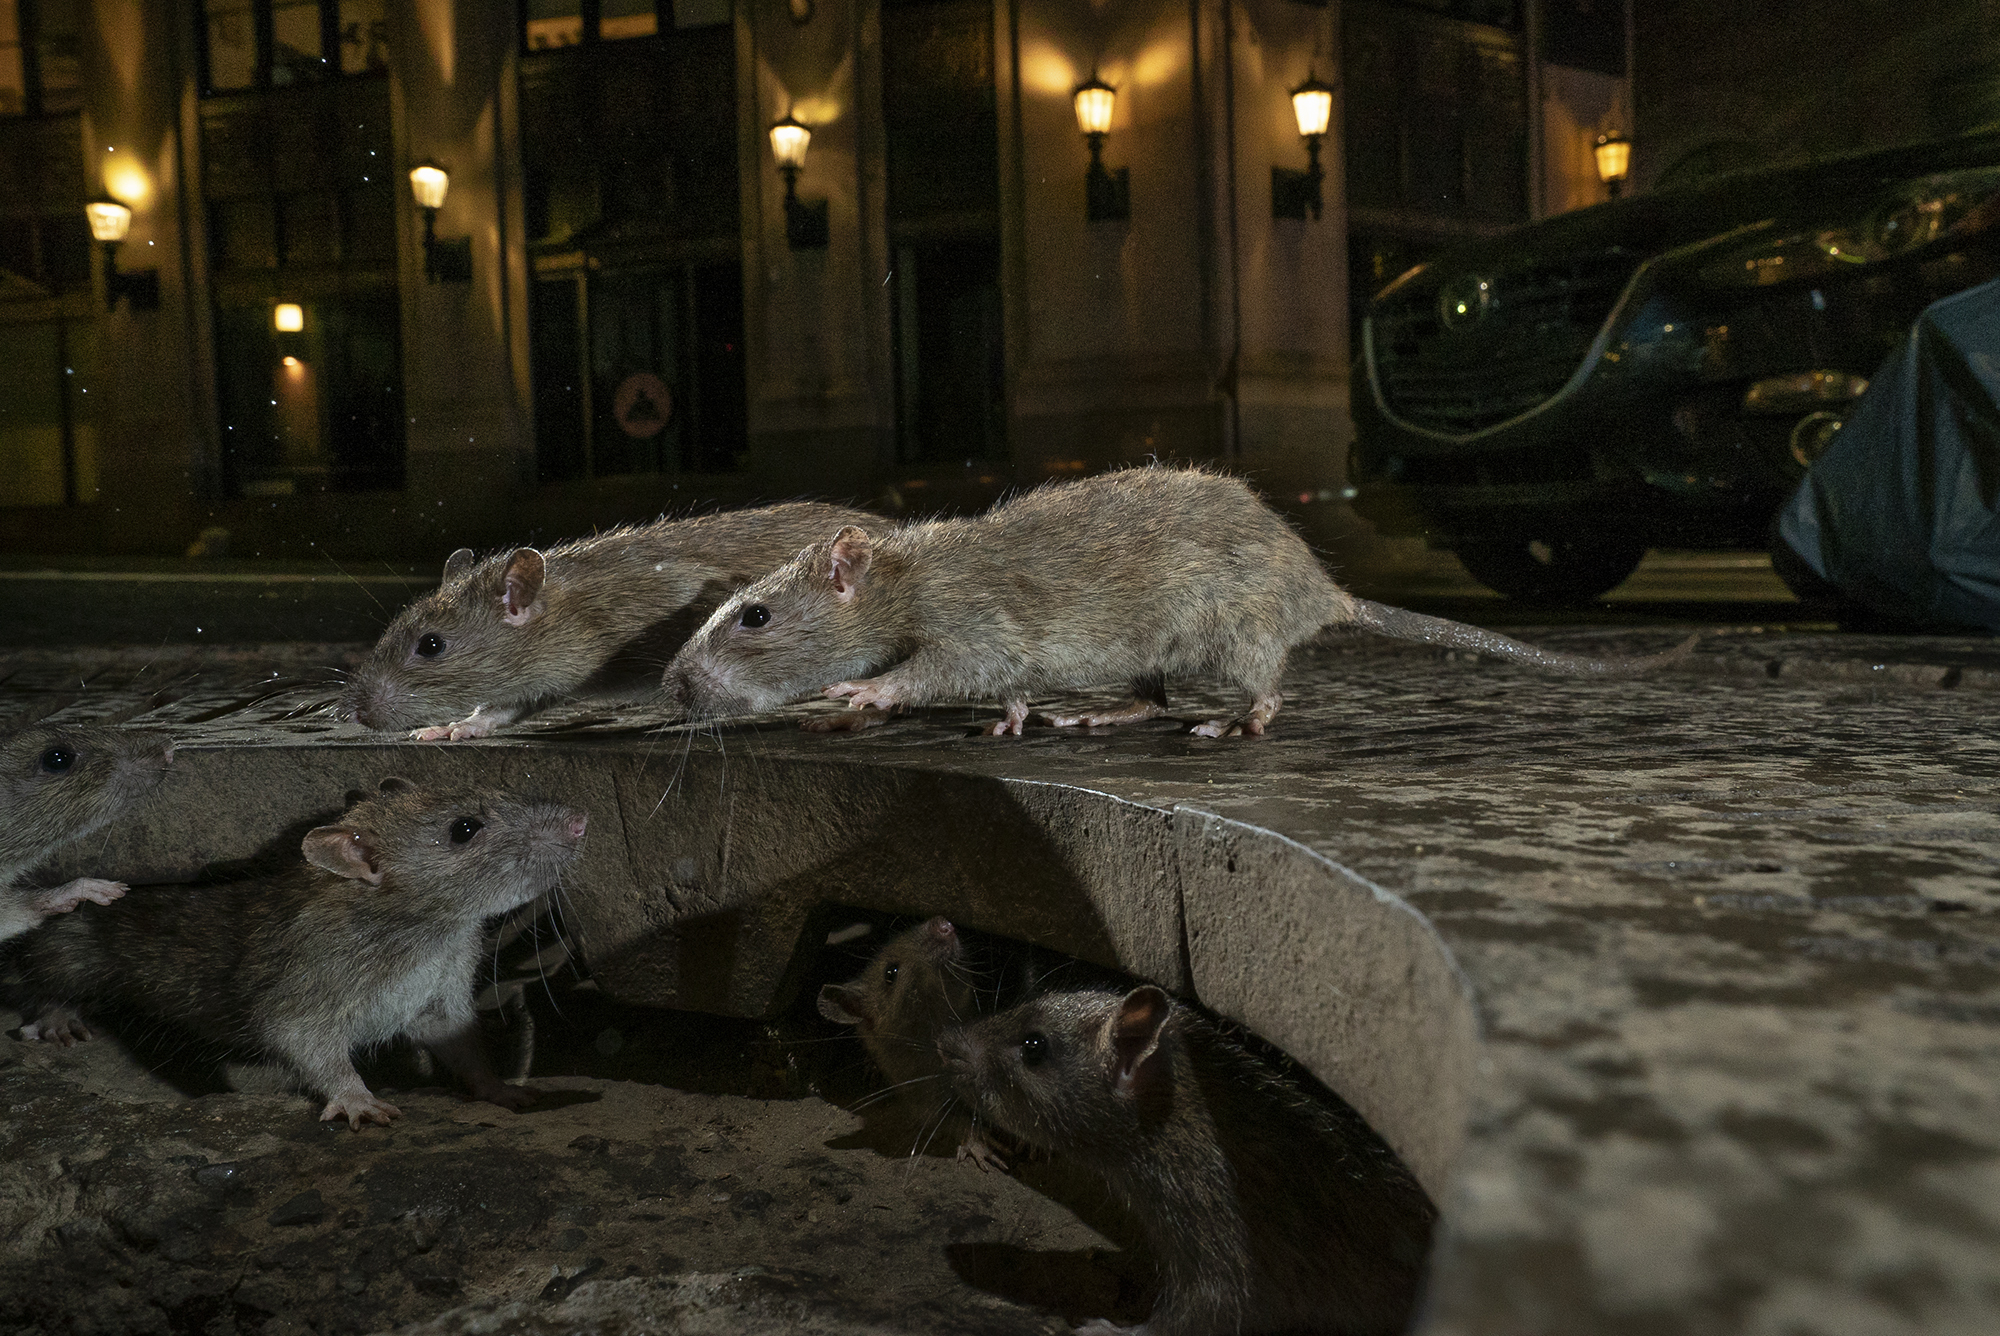 brown rats in Pearl Street in New York's Lower Manhattan